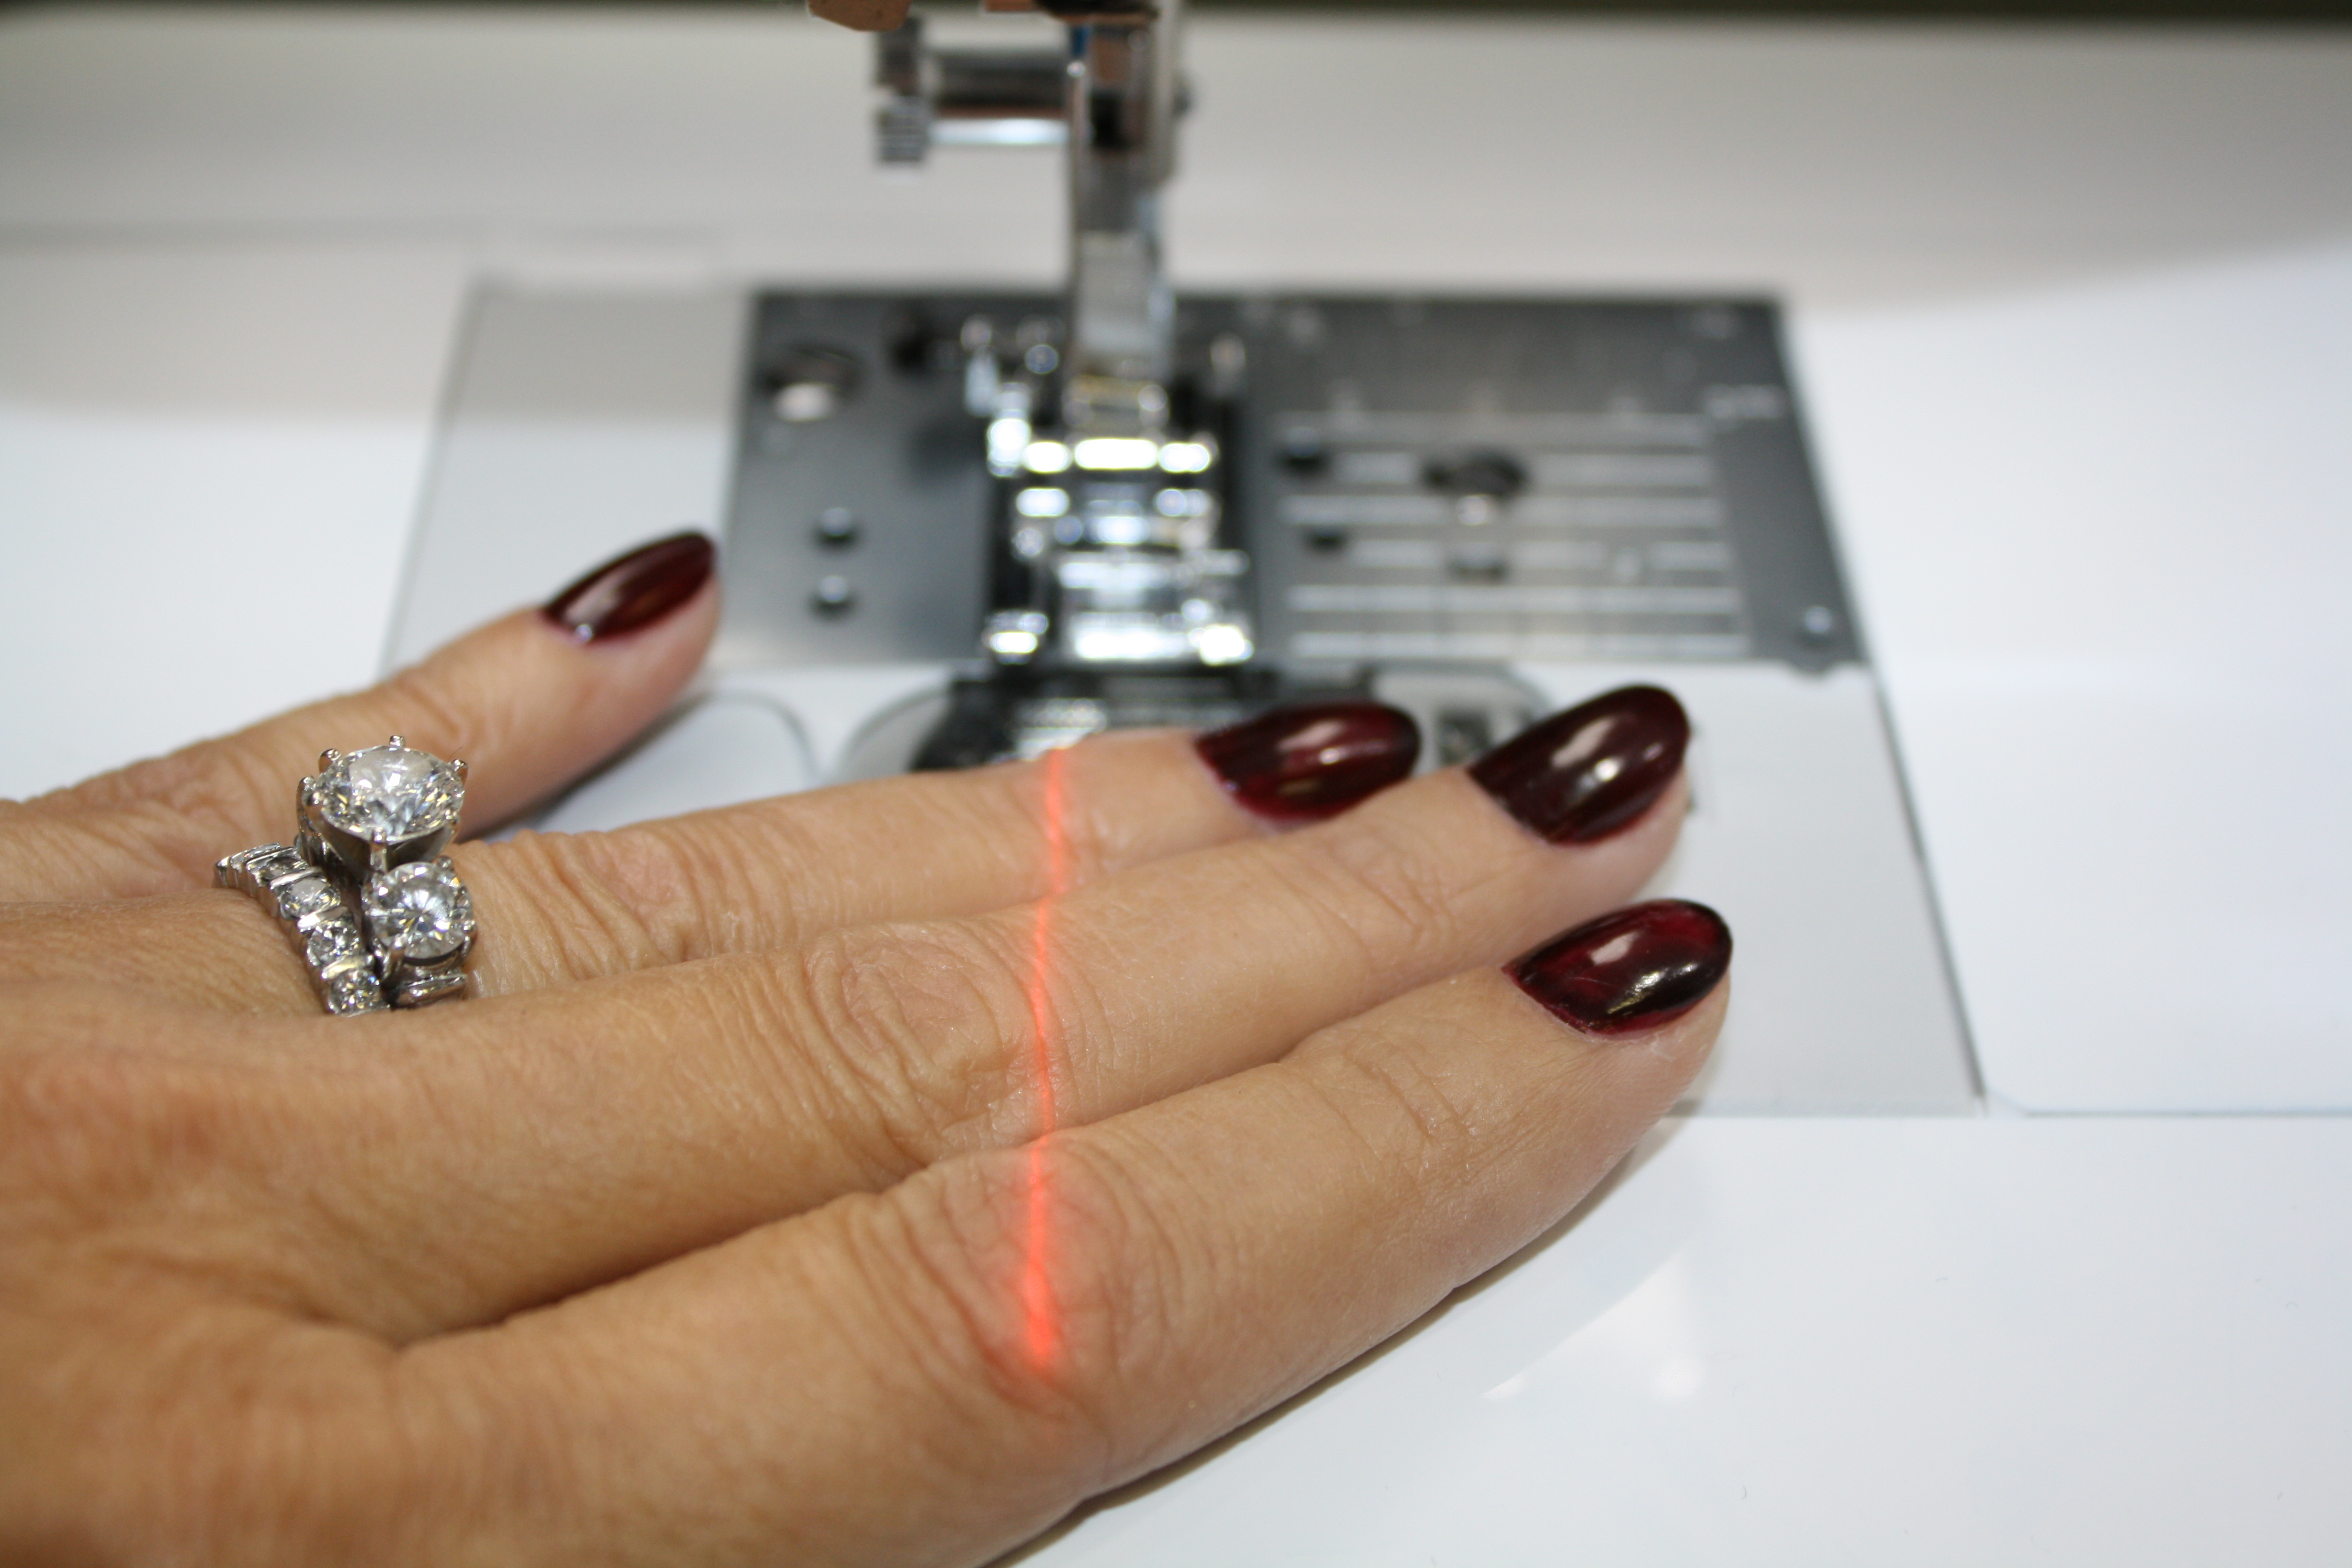 laser light for sewing machine